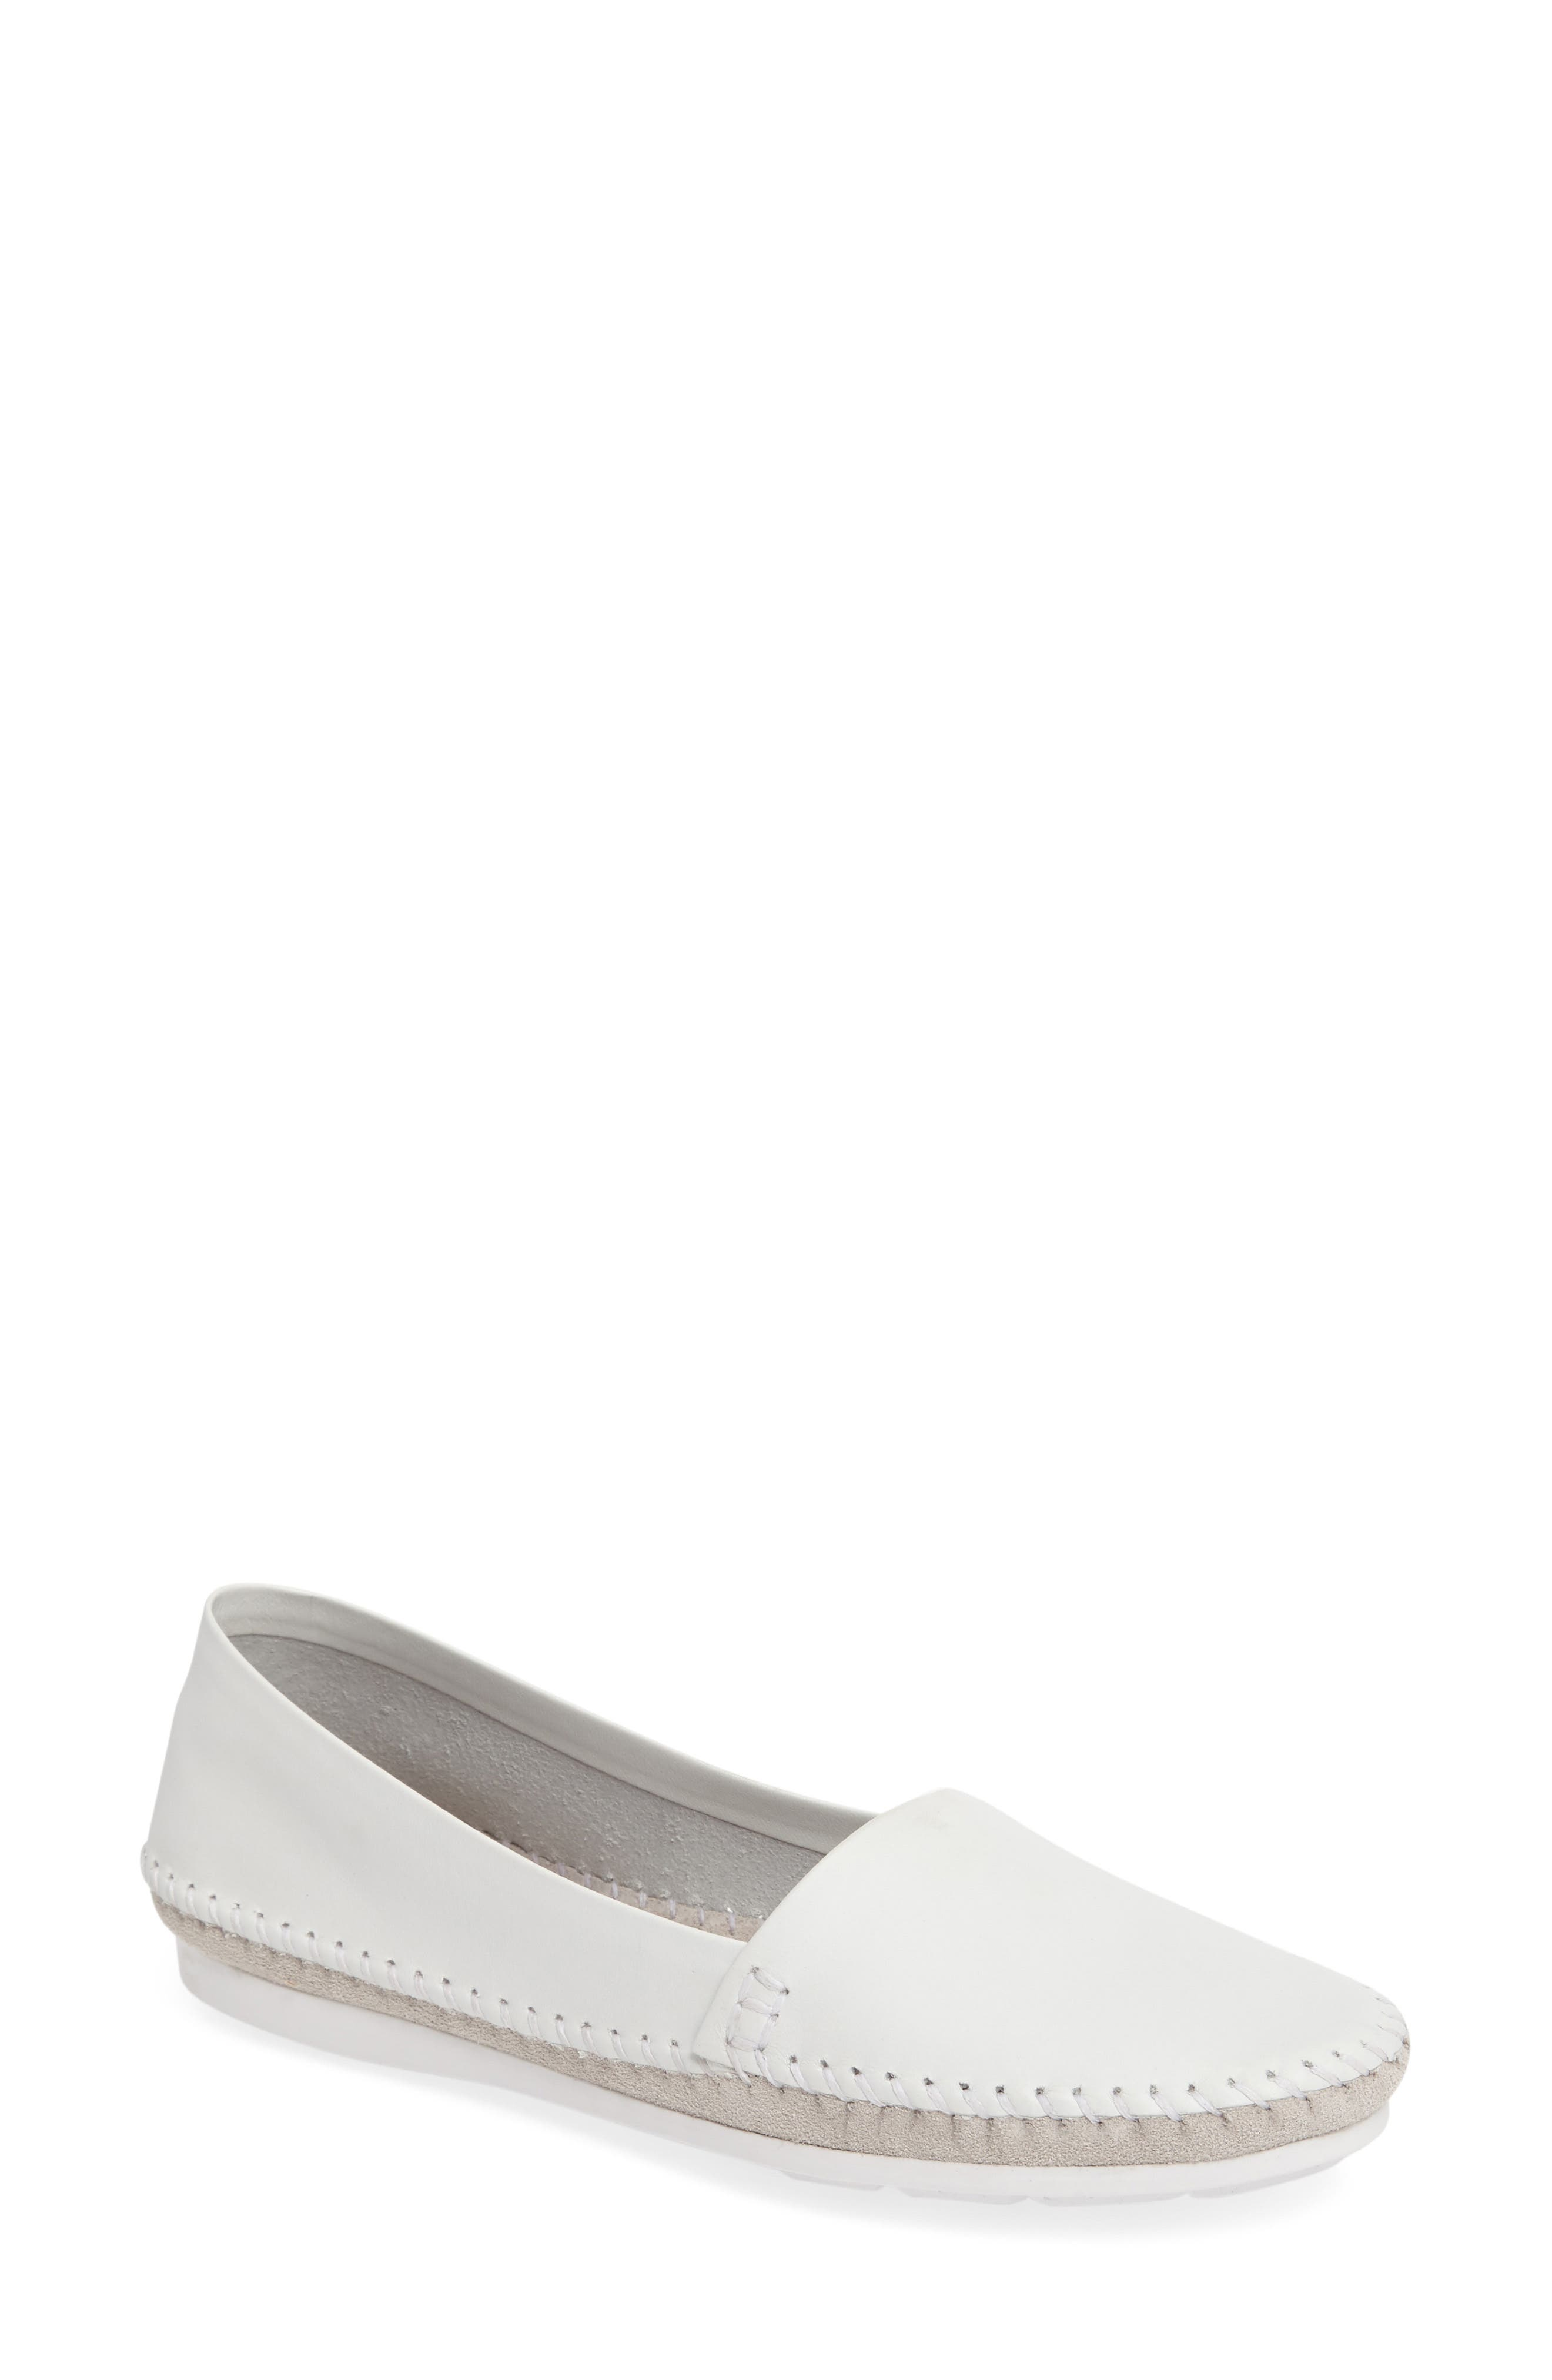 Star Flat,                         Main,                         color, Cloud Leather/ Suede